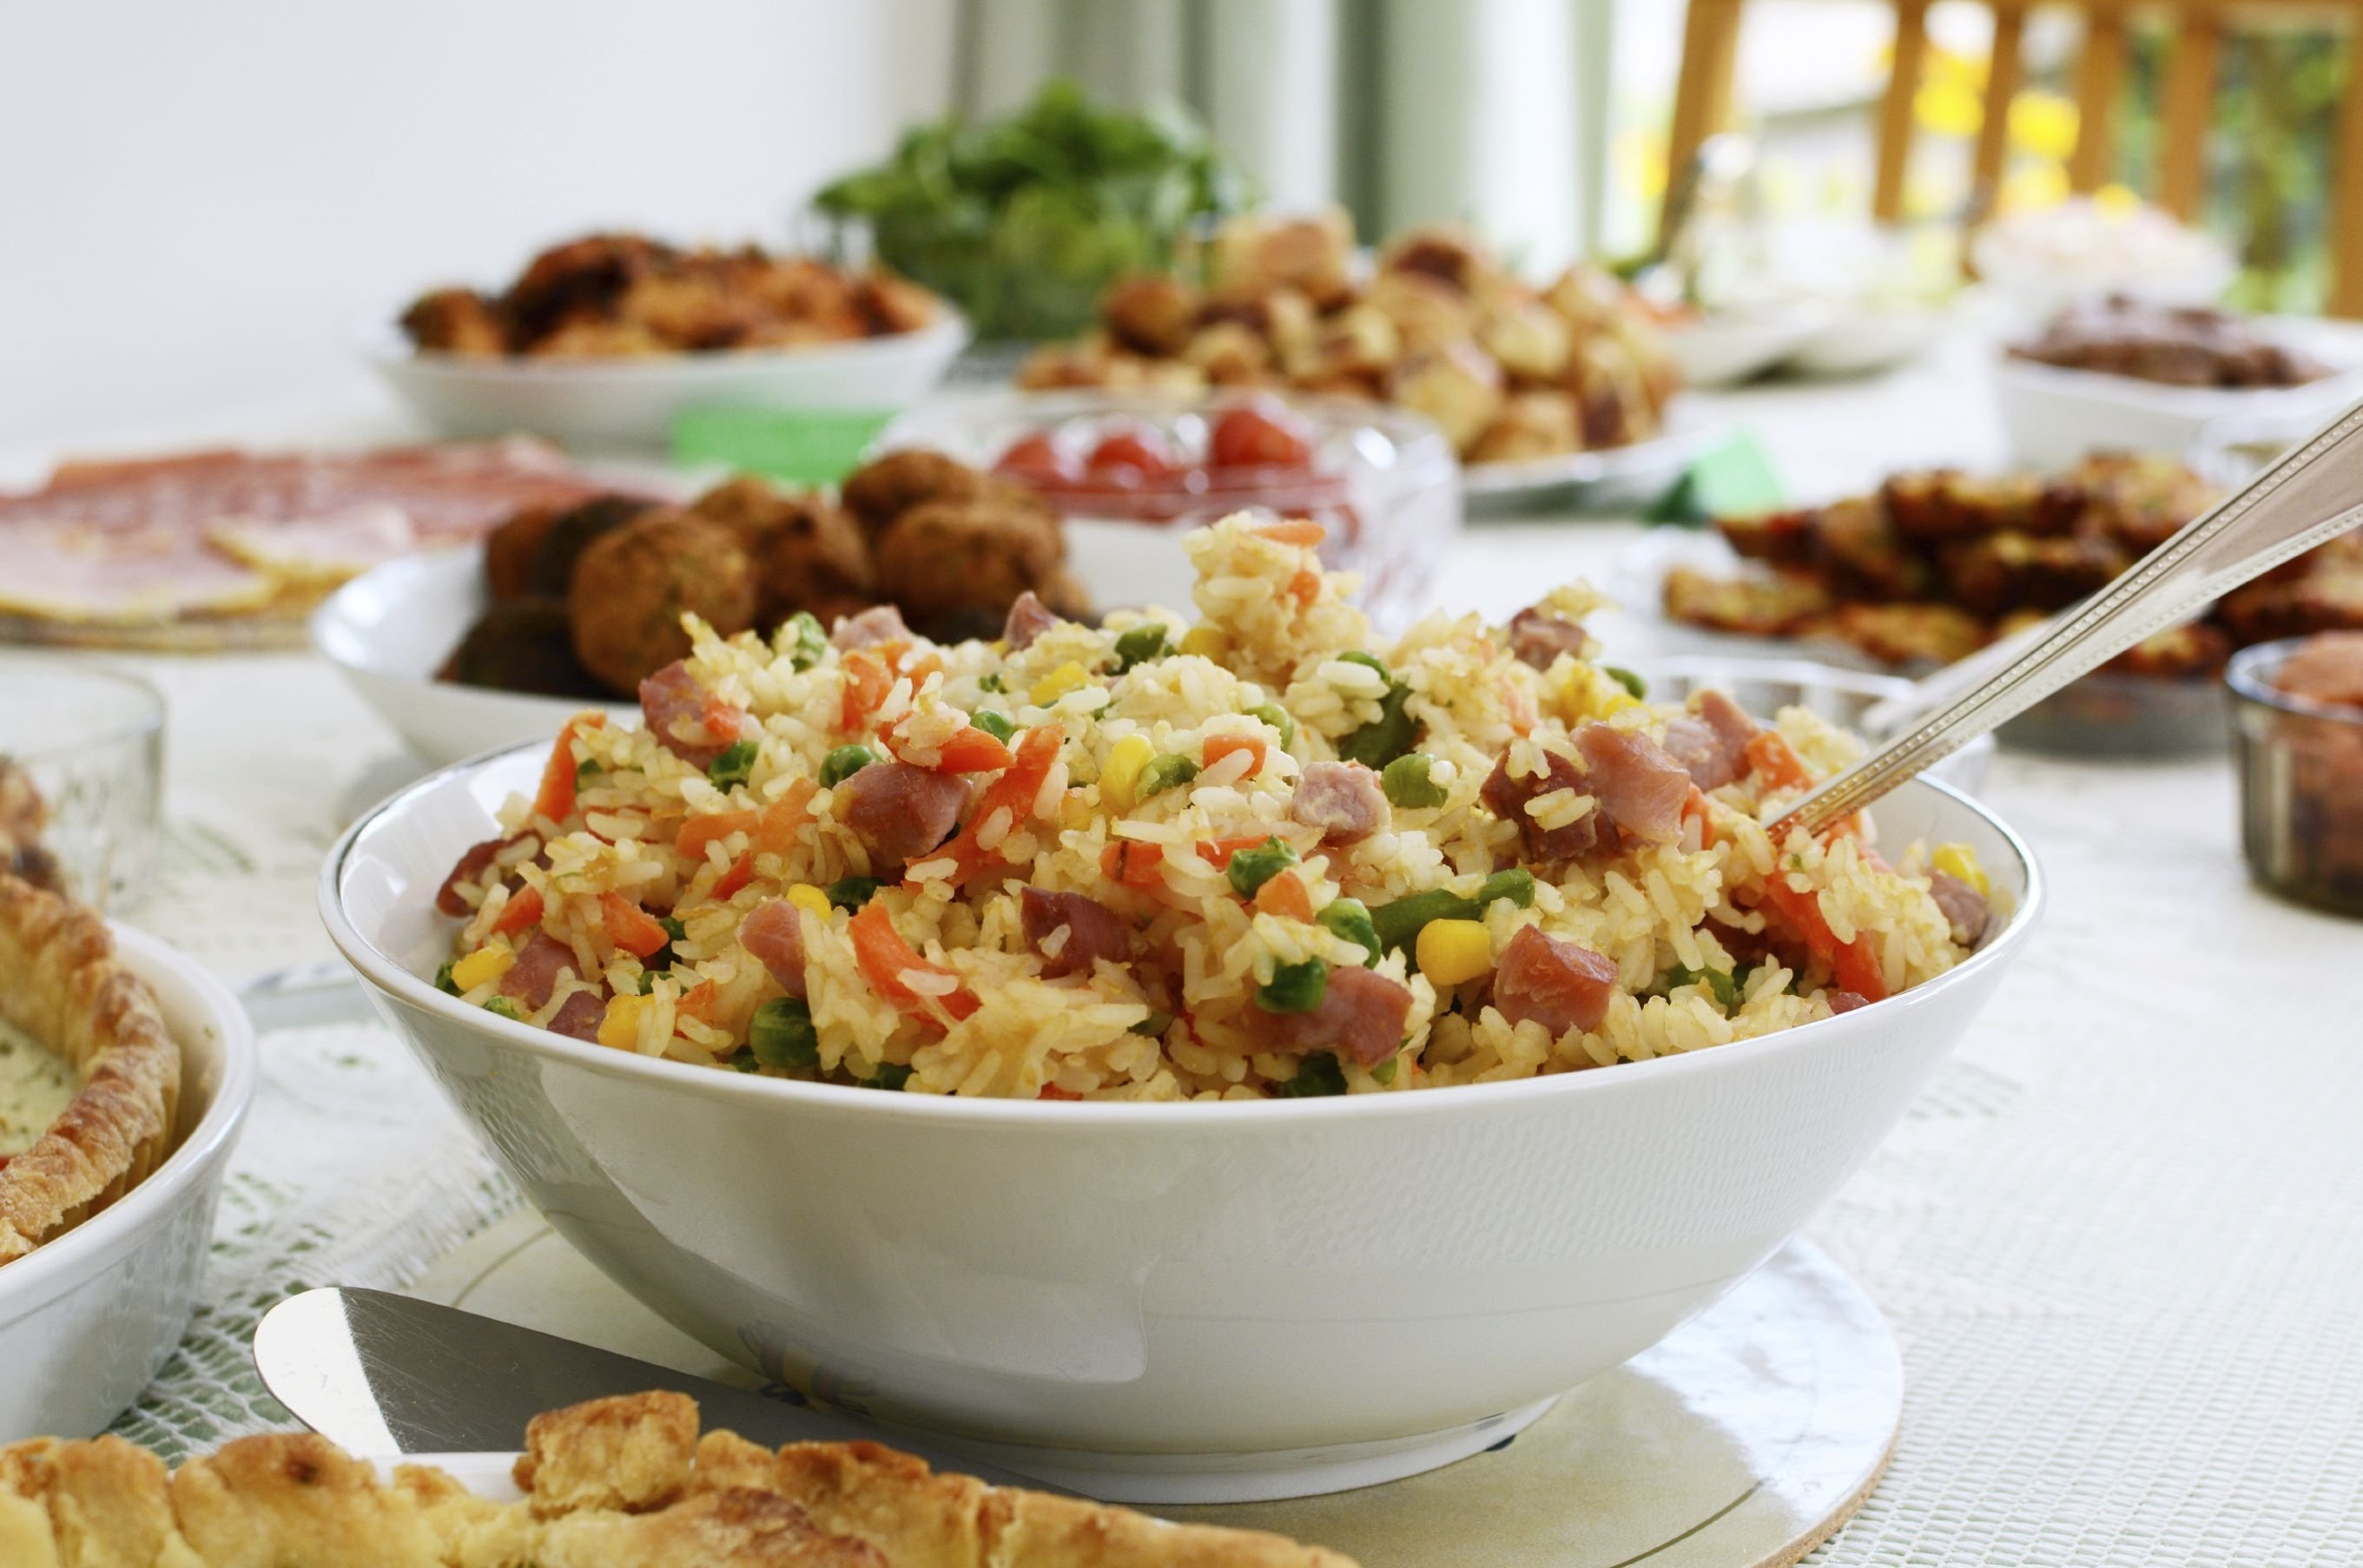 30 potluck themes for work events | potluck themes, potlucks and lunches